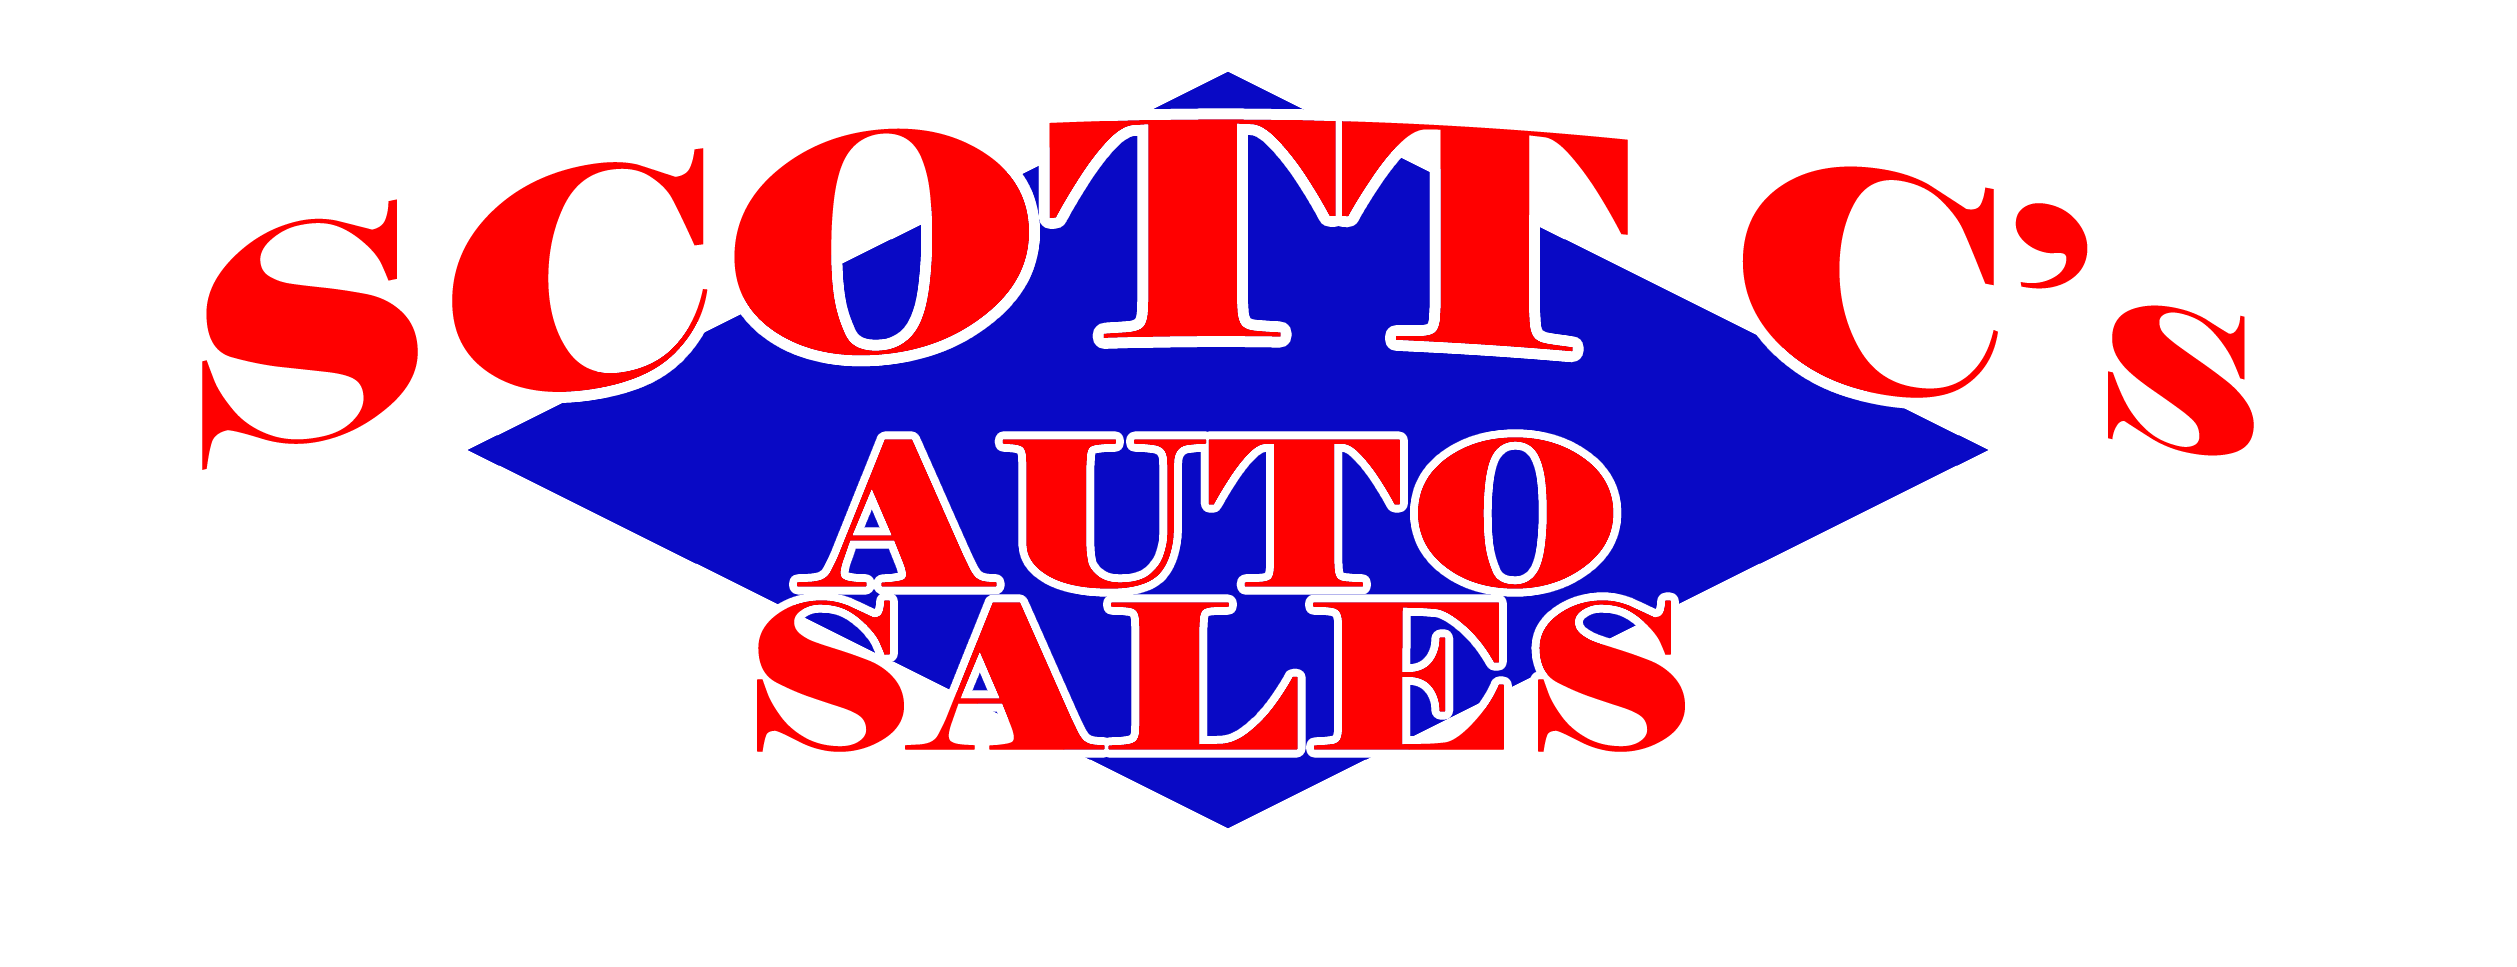 Scott C's Auto Sales logo